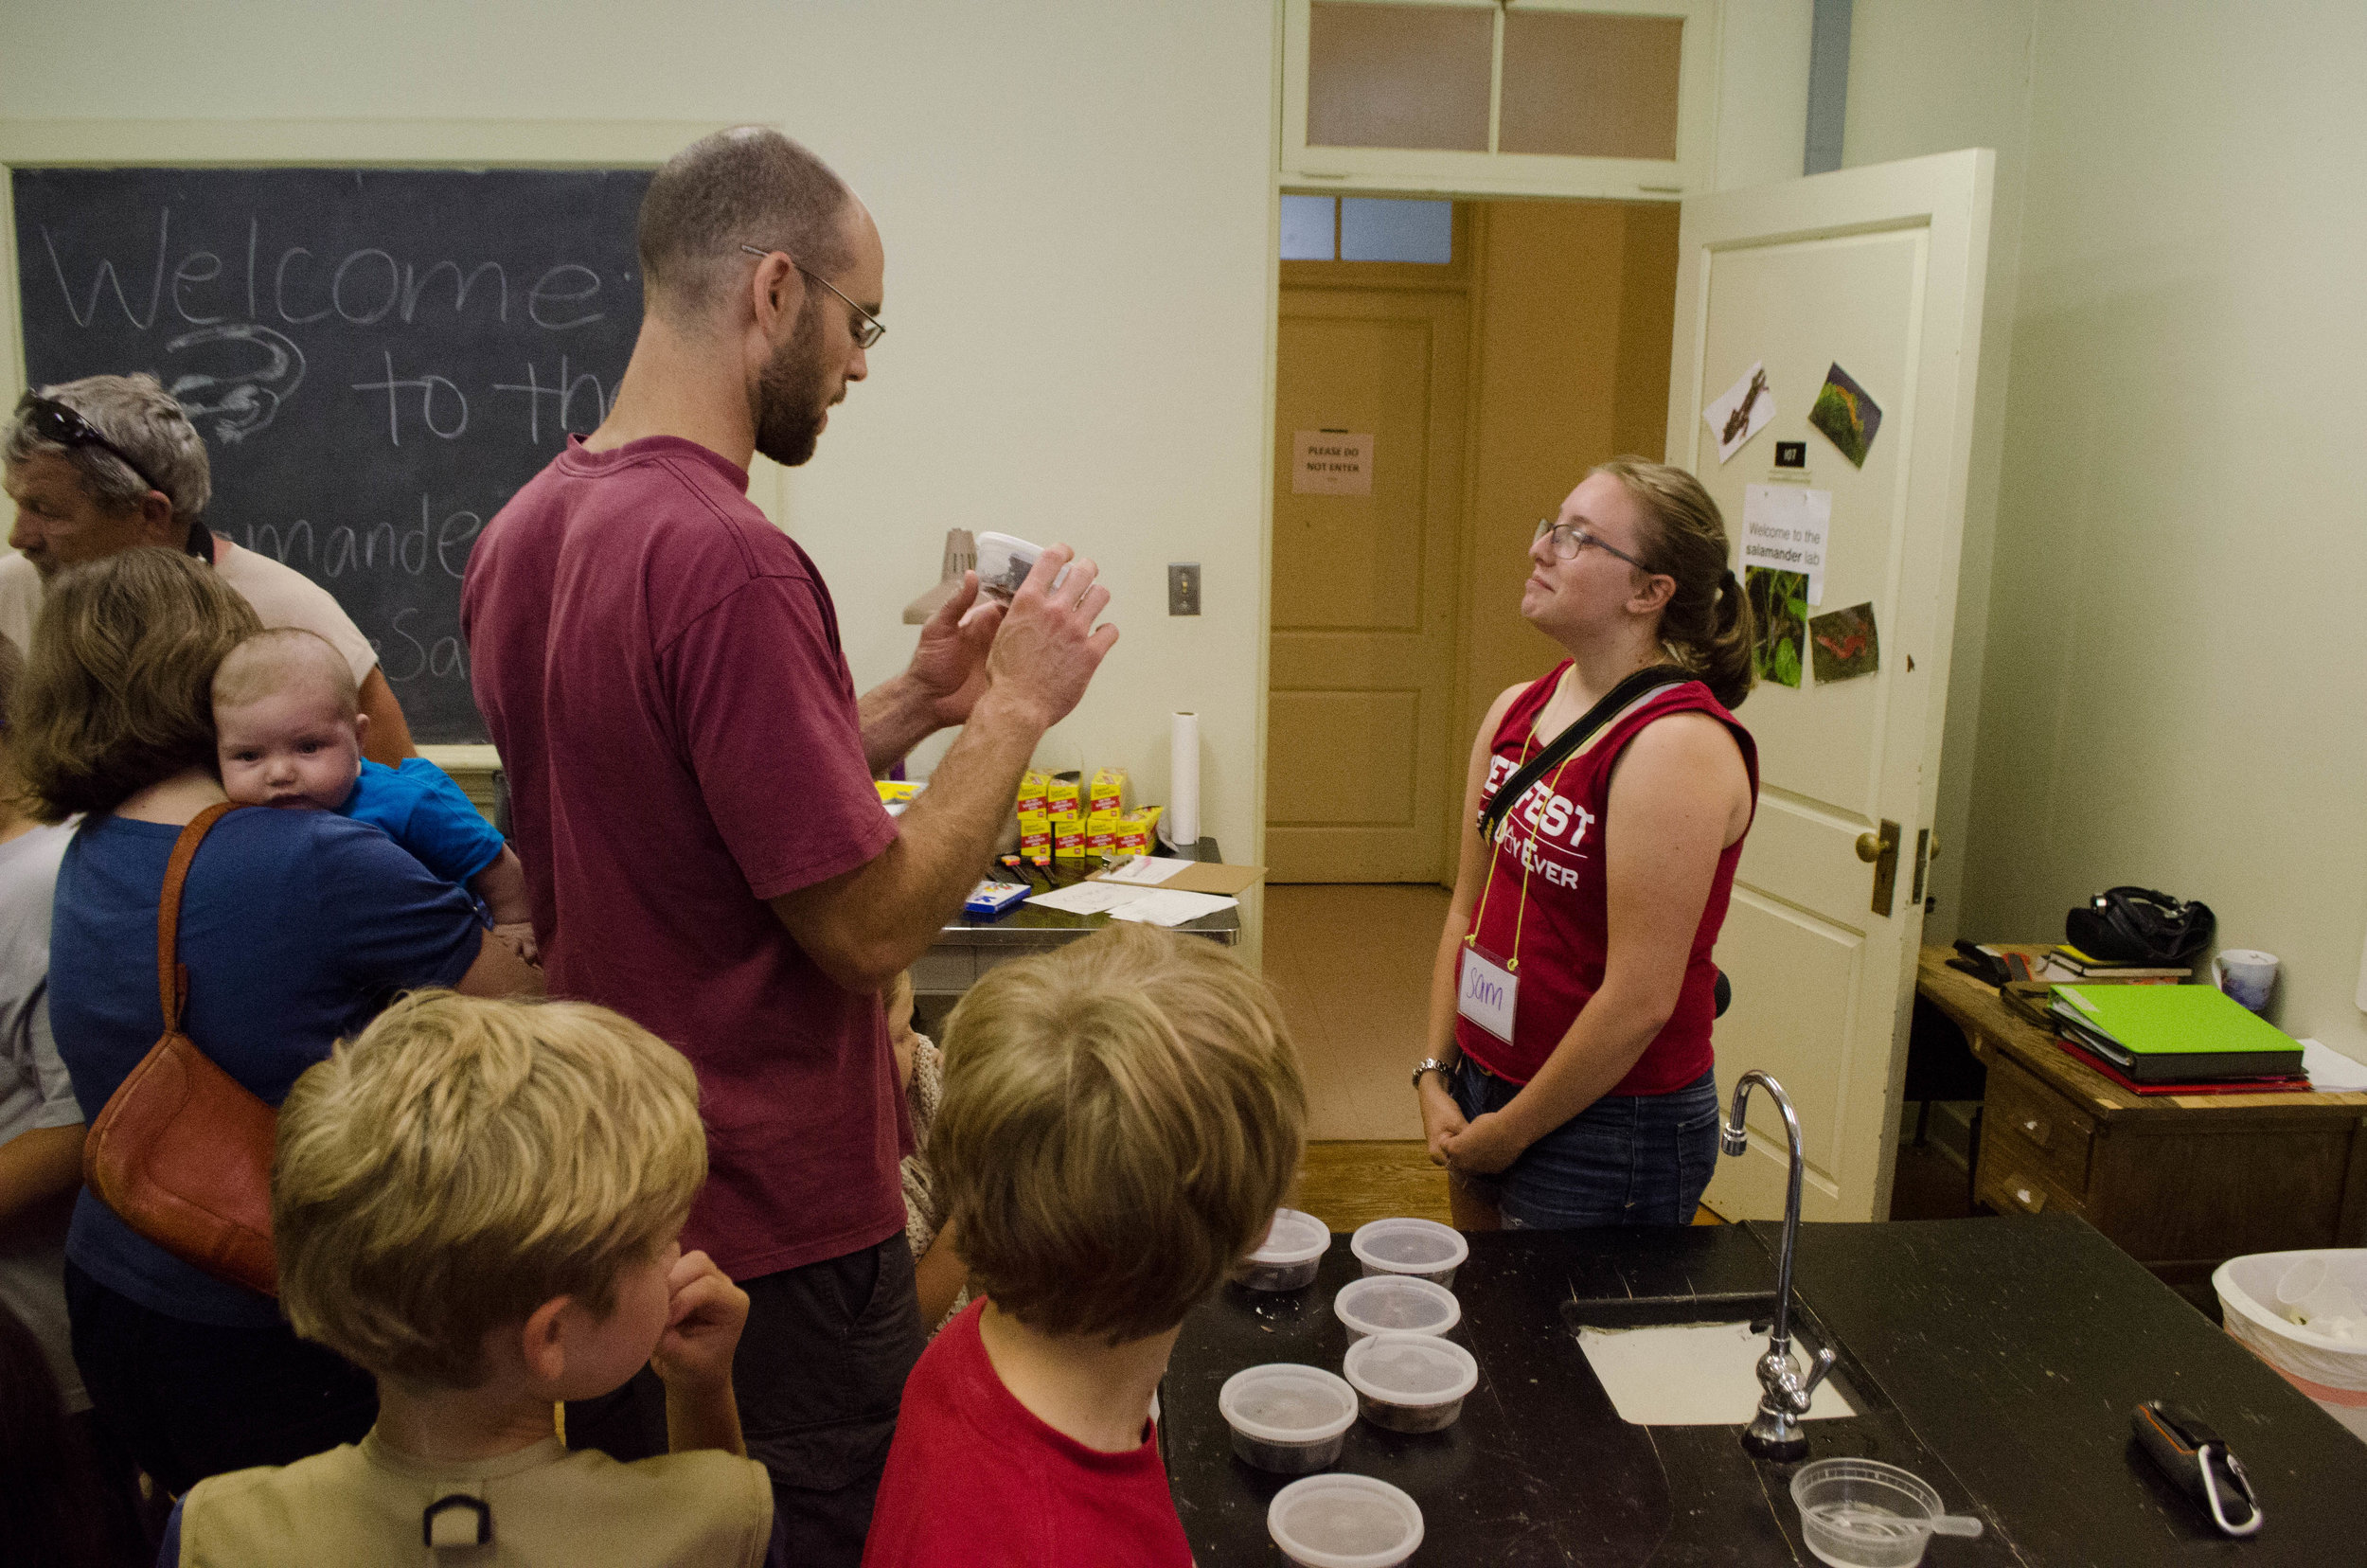 Sam teaching about salamanders at MLBS open house event